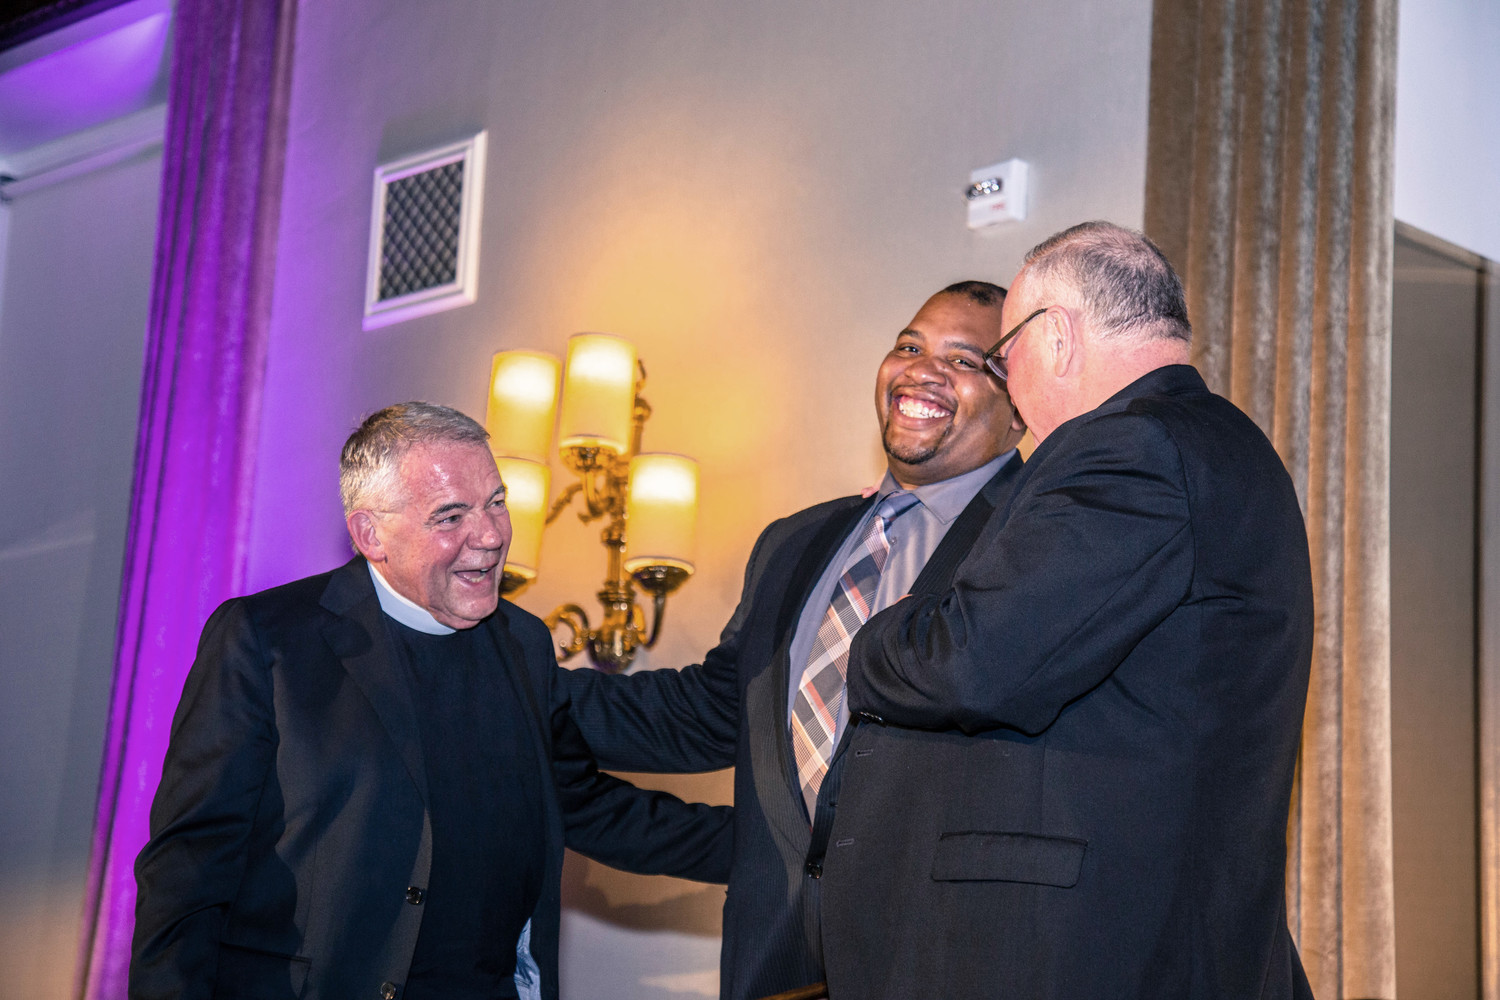 Father John P. Duffell, pastor of the Blessed Sacrament parish in Manhattan, and Jerome Pannell, assistant principal of student services at La Salle Academy in Manhattan, accepted the posthumous award to Msgr. Howard W. Calkins, a former pastor of parishes in the archdiocese; at right is Cardinal Dolan.